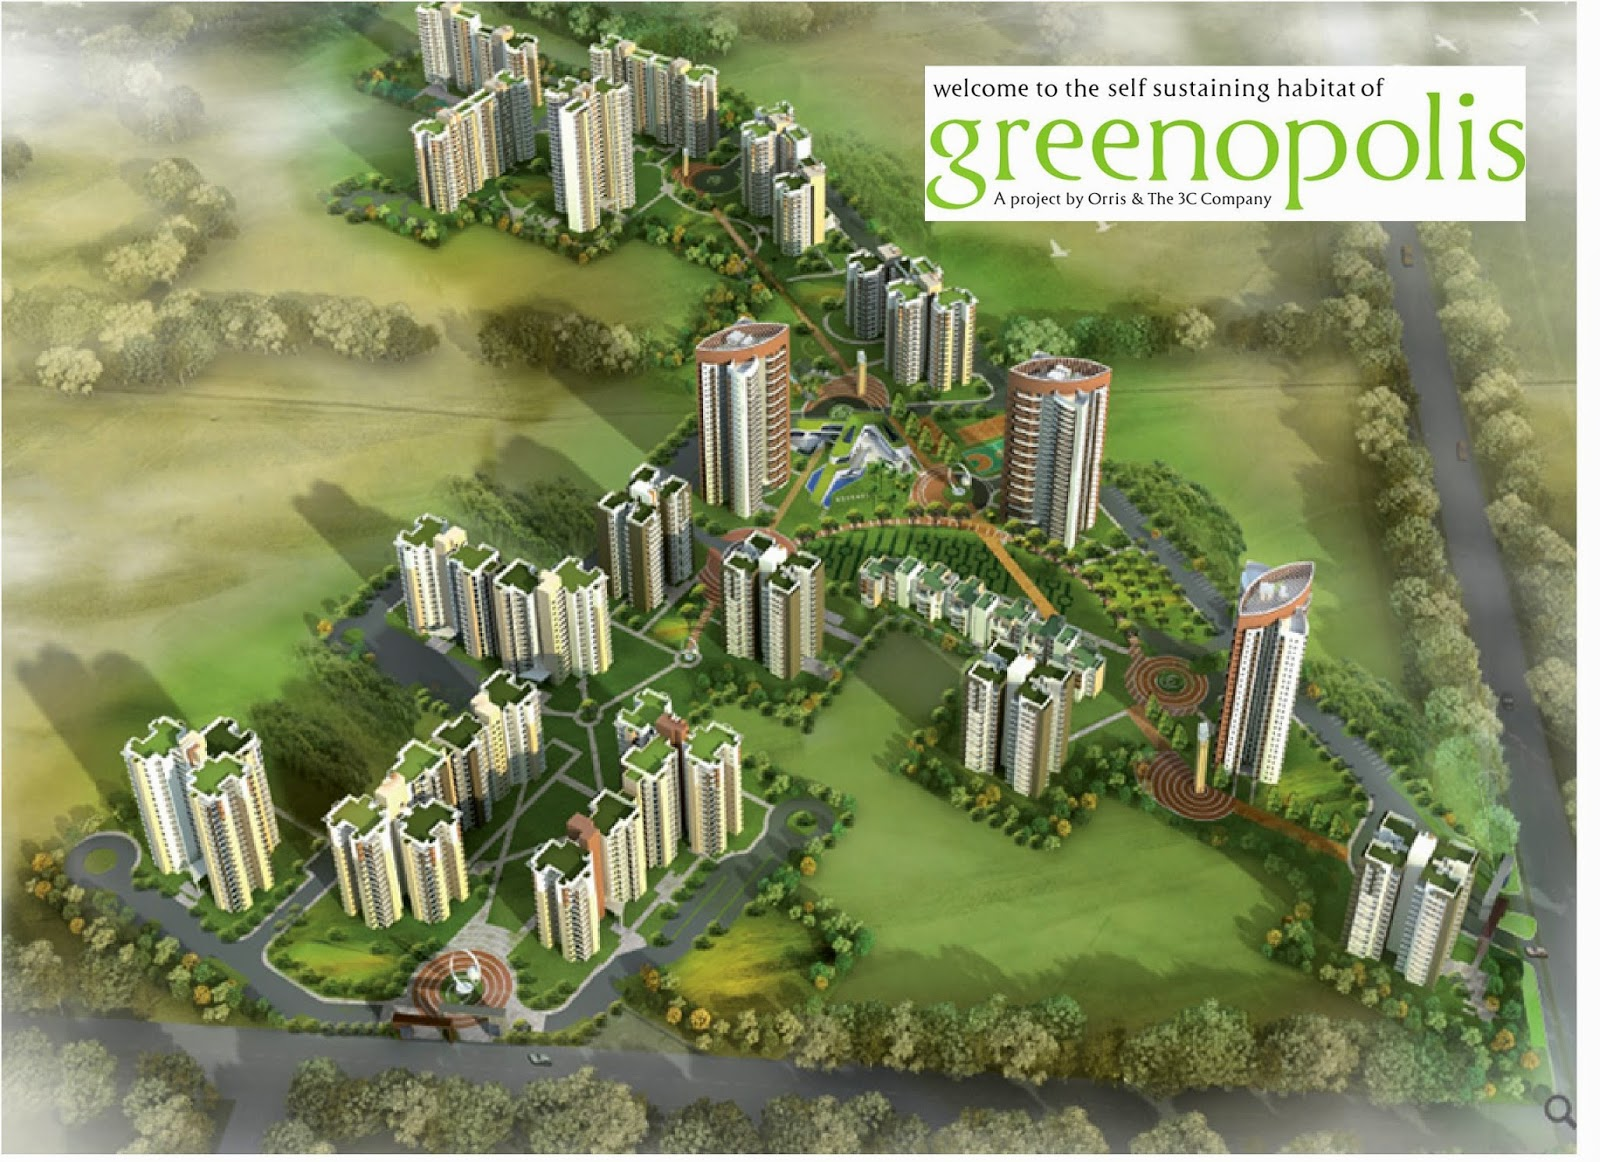 3C-Orris Greenopolis Sector-89 Gurgaon